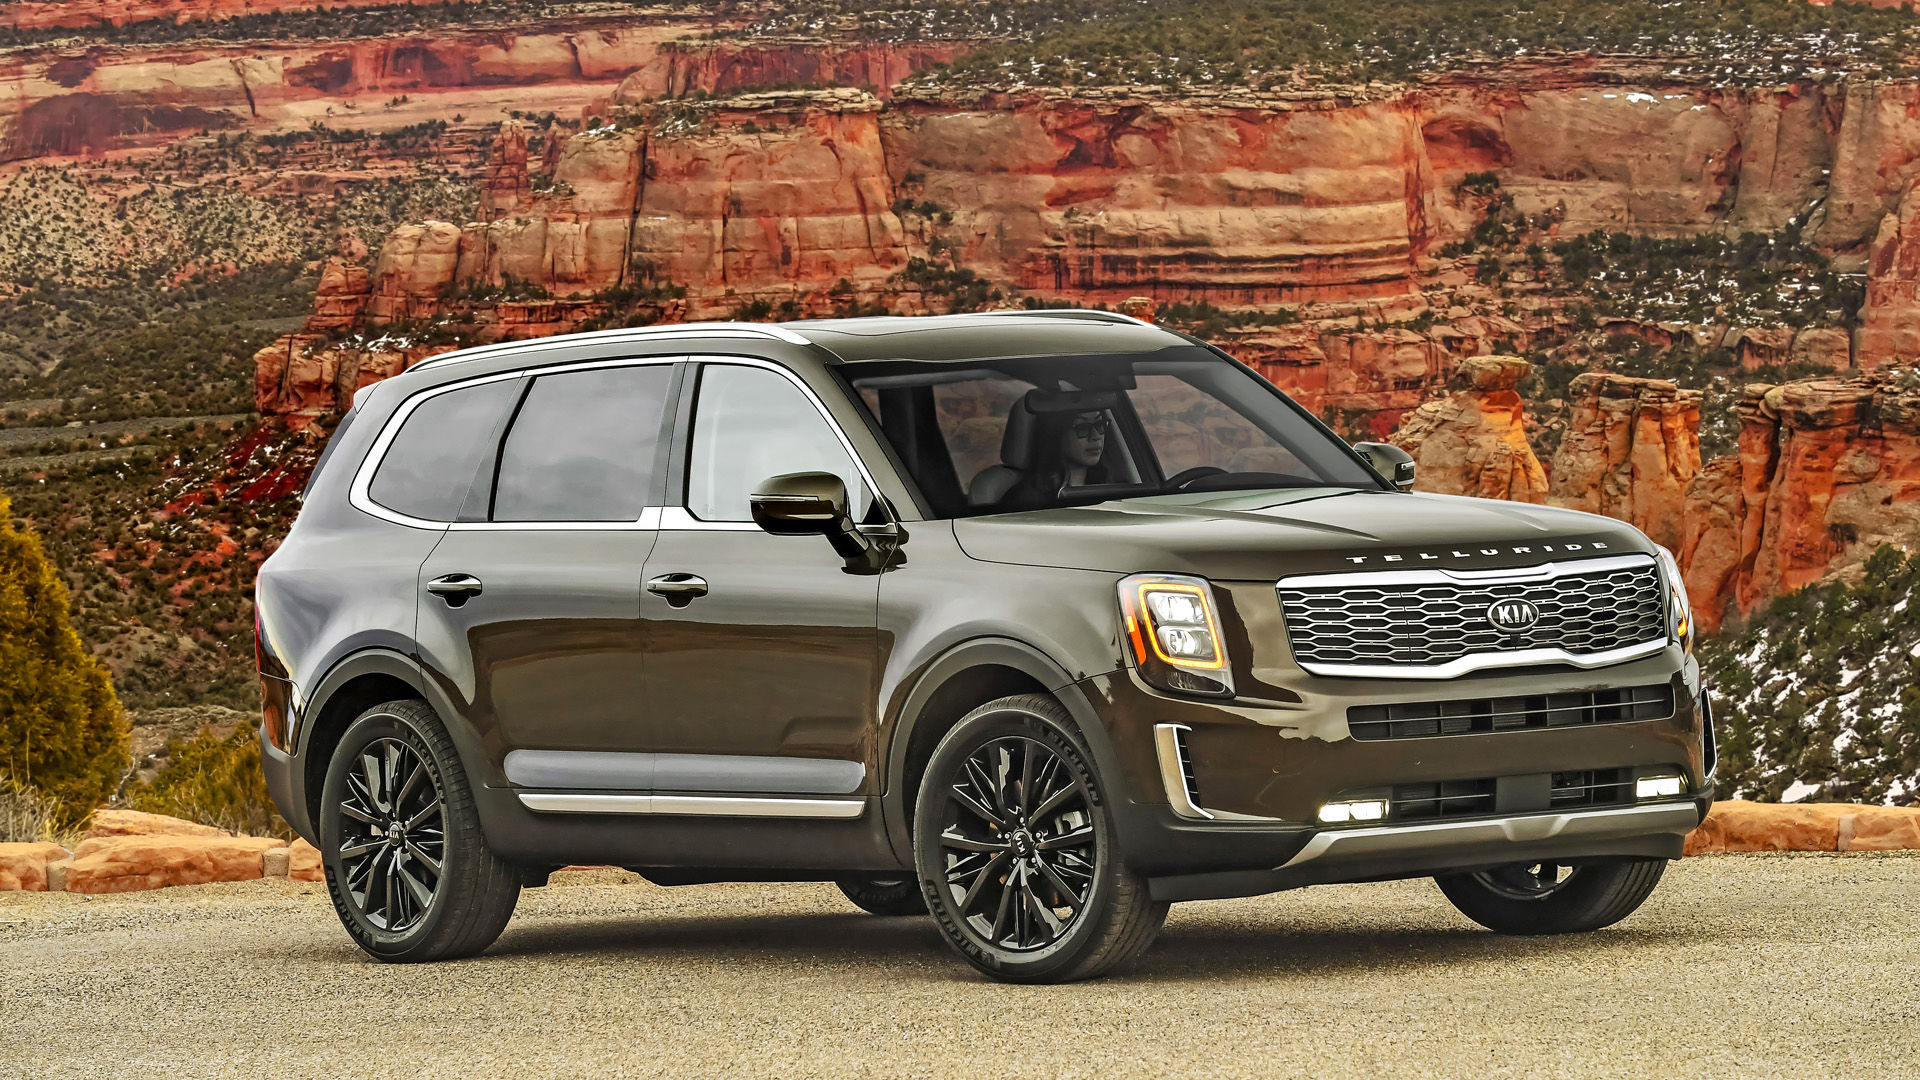 28 Best When Does The 2020 Kia Telluride Come Out Picture